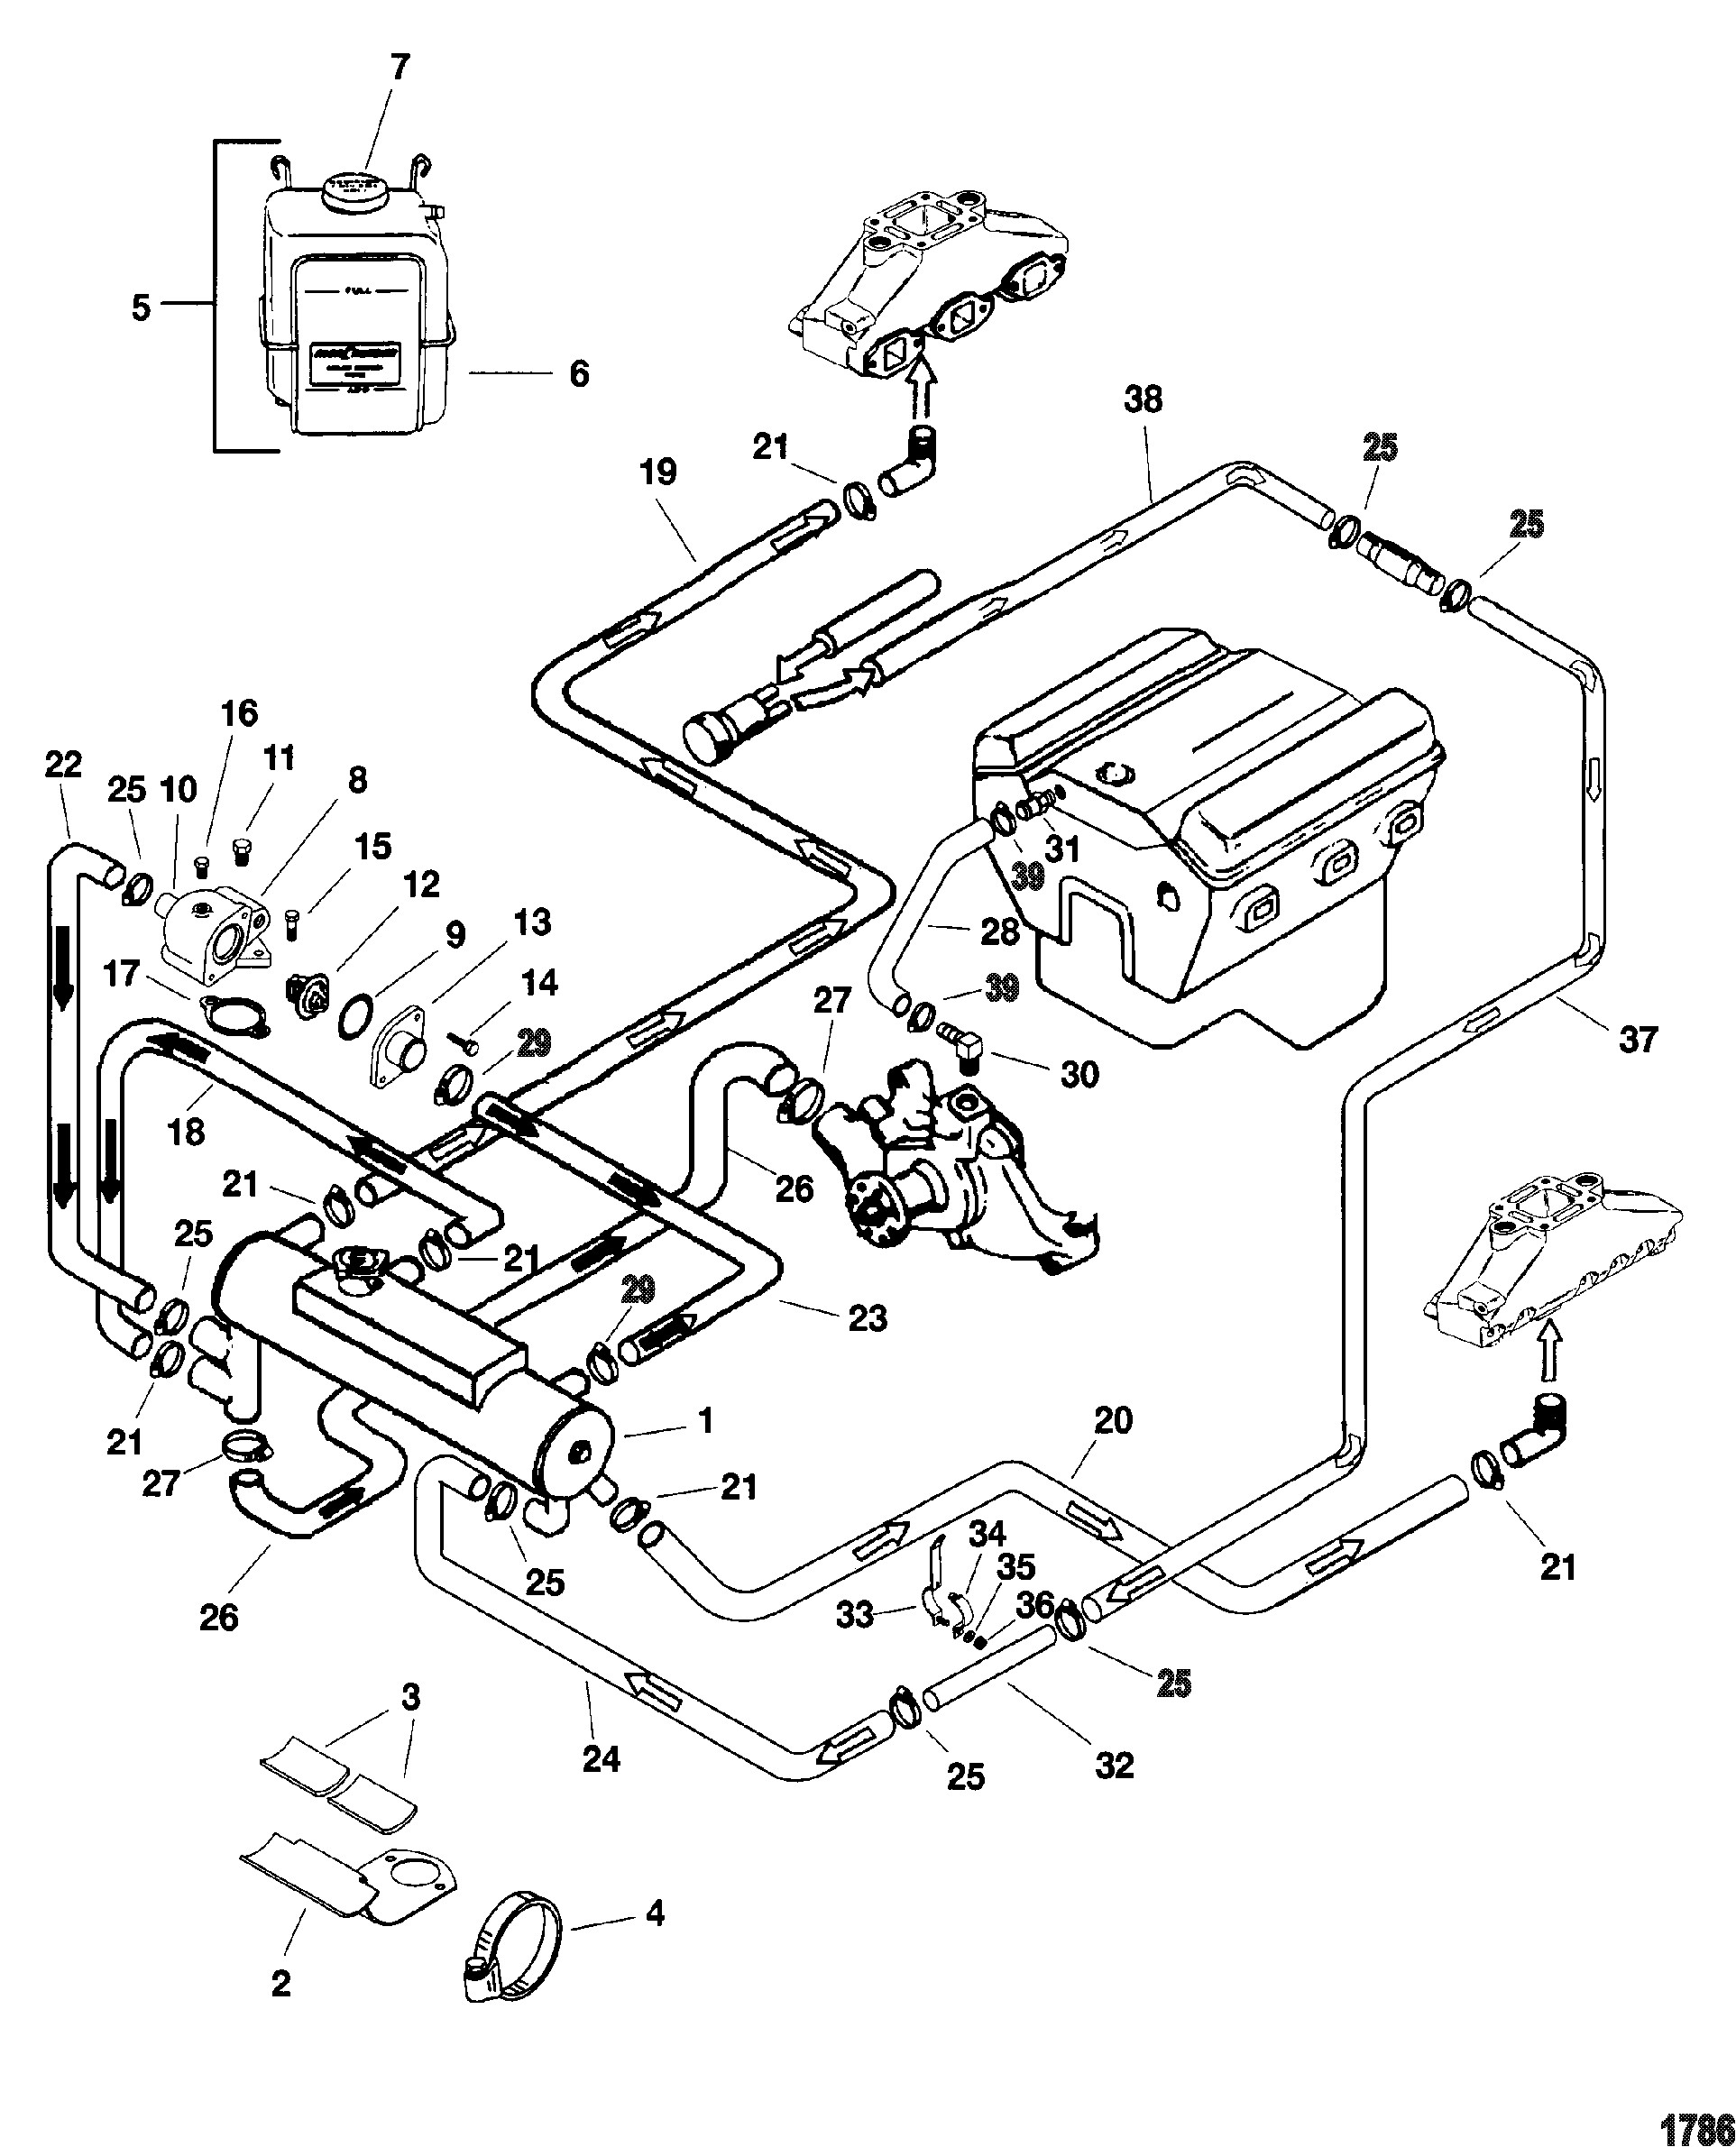 Wiring Diagram For A Starter On My 2000 Mazda B3000 3.0 V6